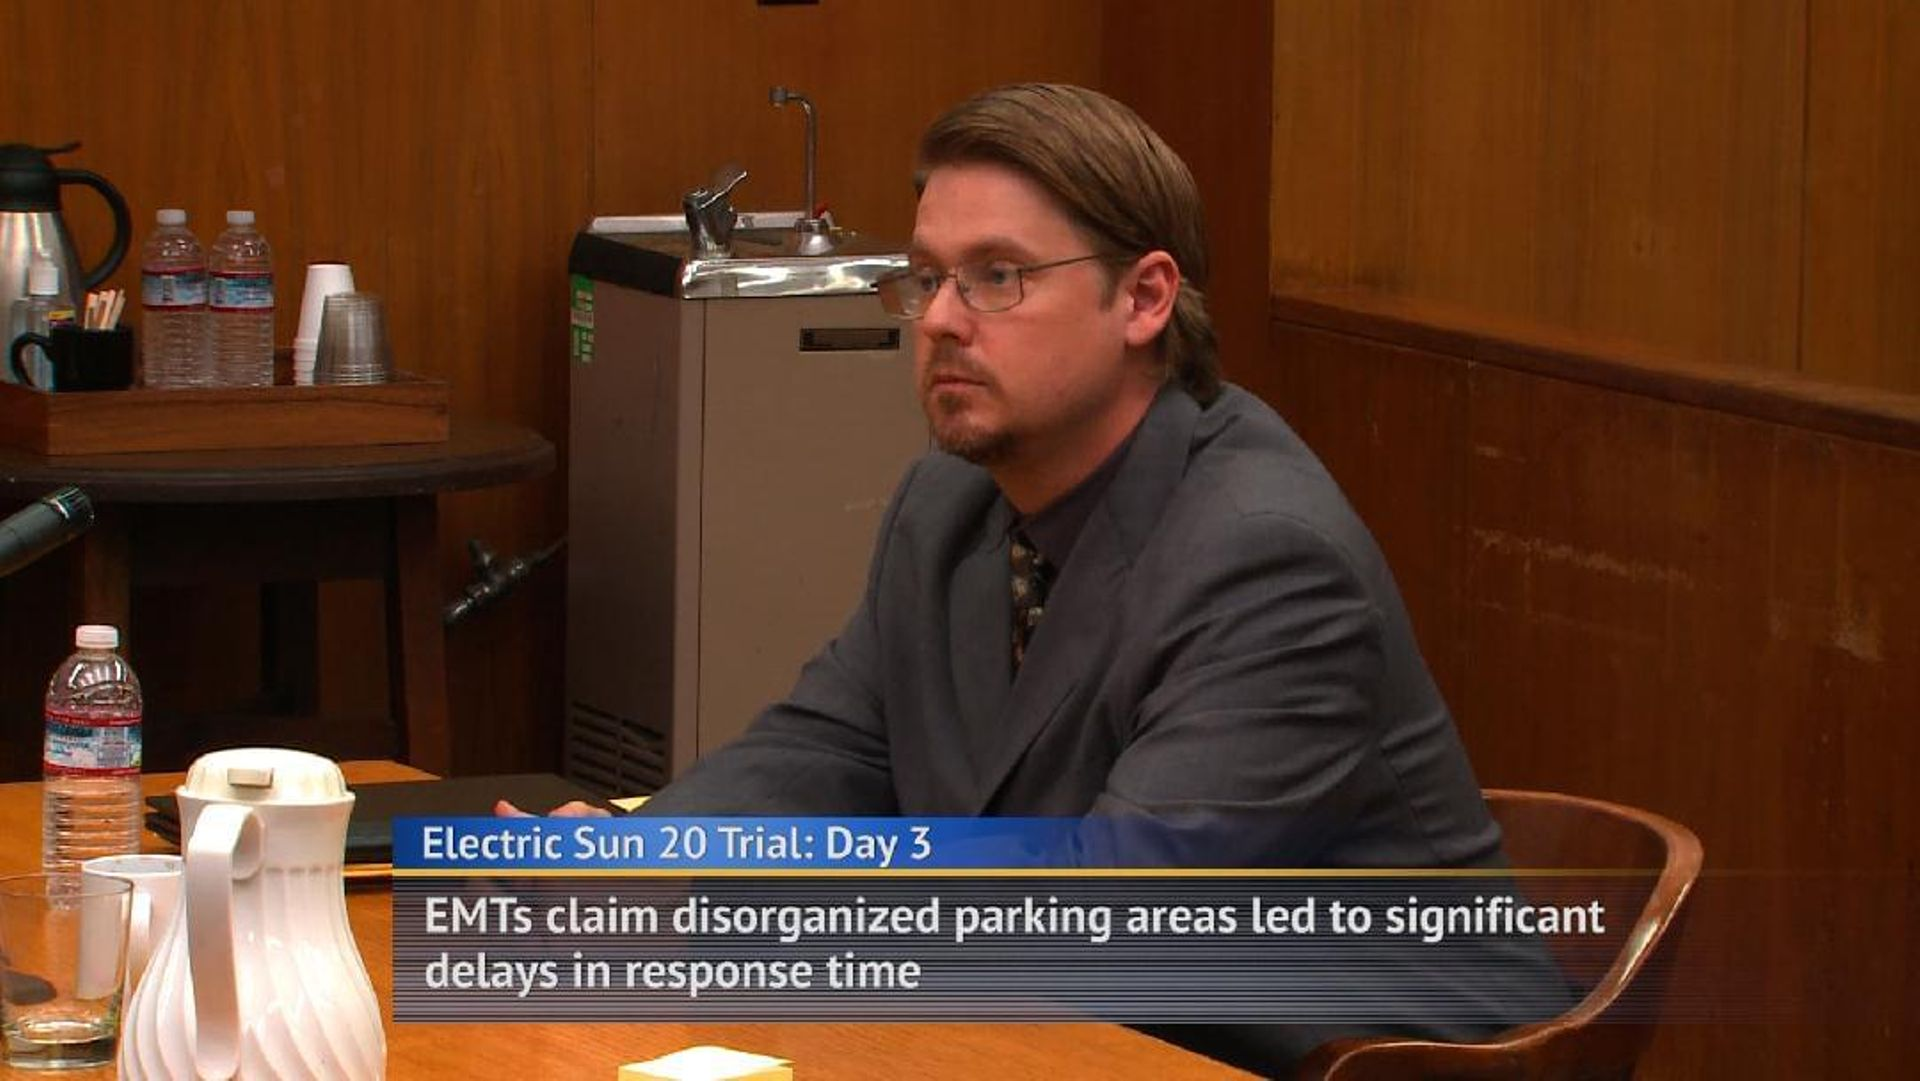 Tim Heidecker Trial - Highlights From Day 3